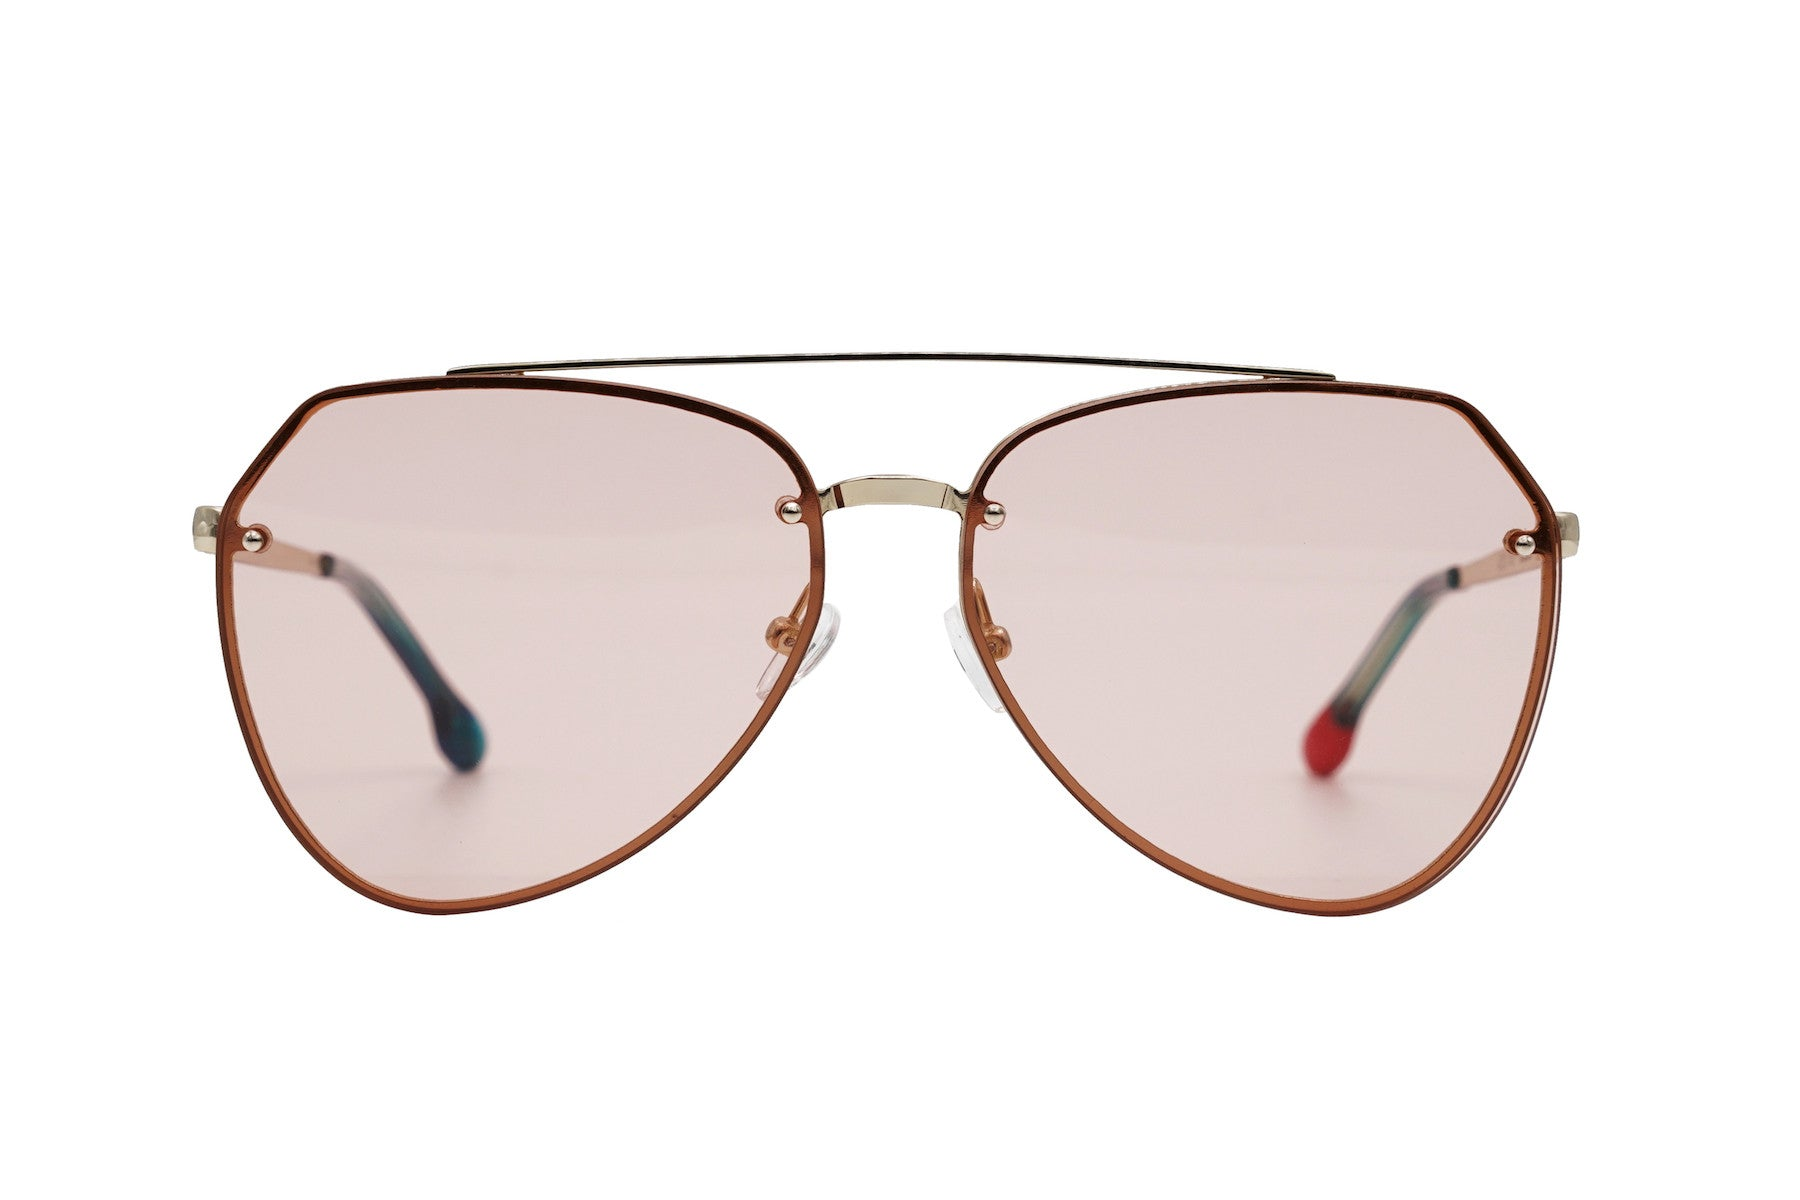 Doheny in Peach - Peppertint - Designer sunglasses